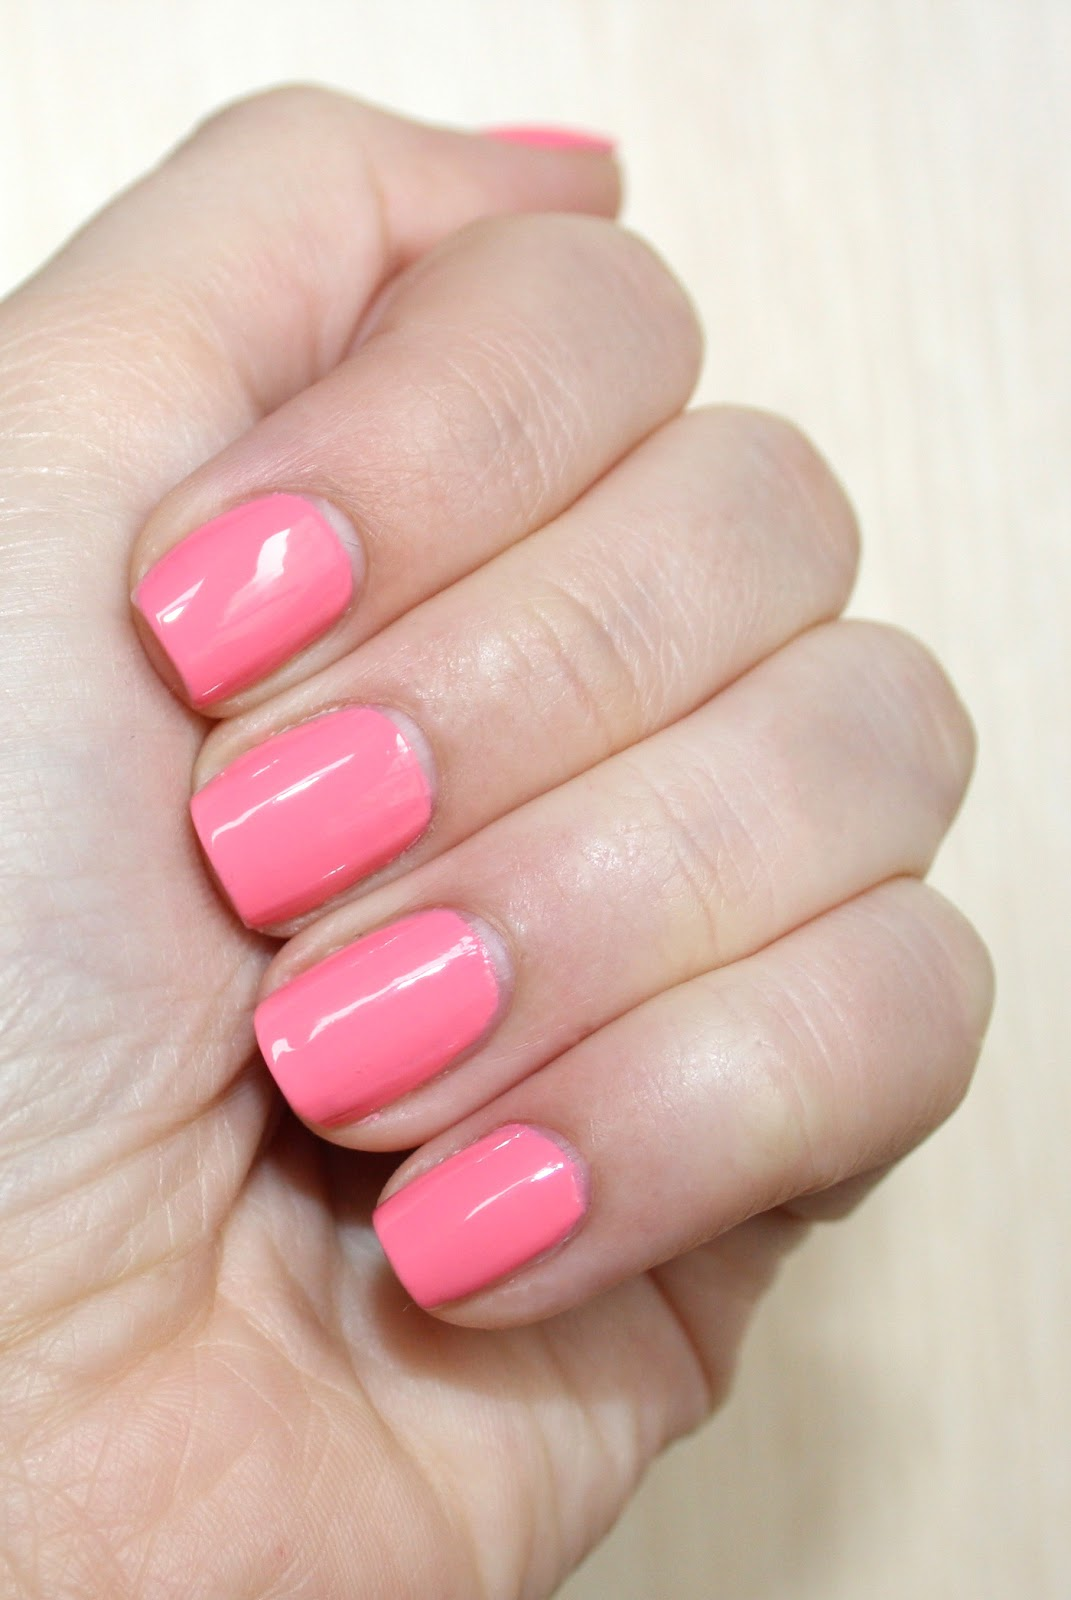 Notd sally hansen complete salon manicure in 510 i pink i for Polished nail salon